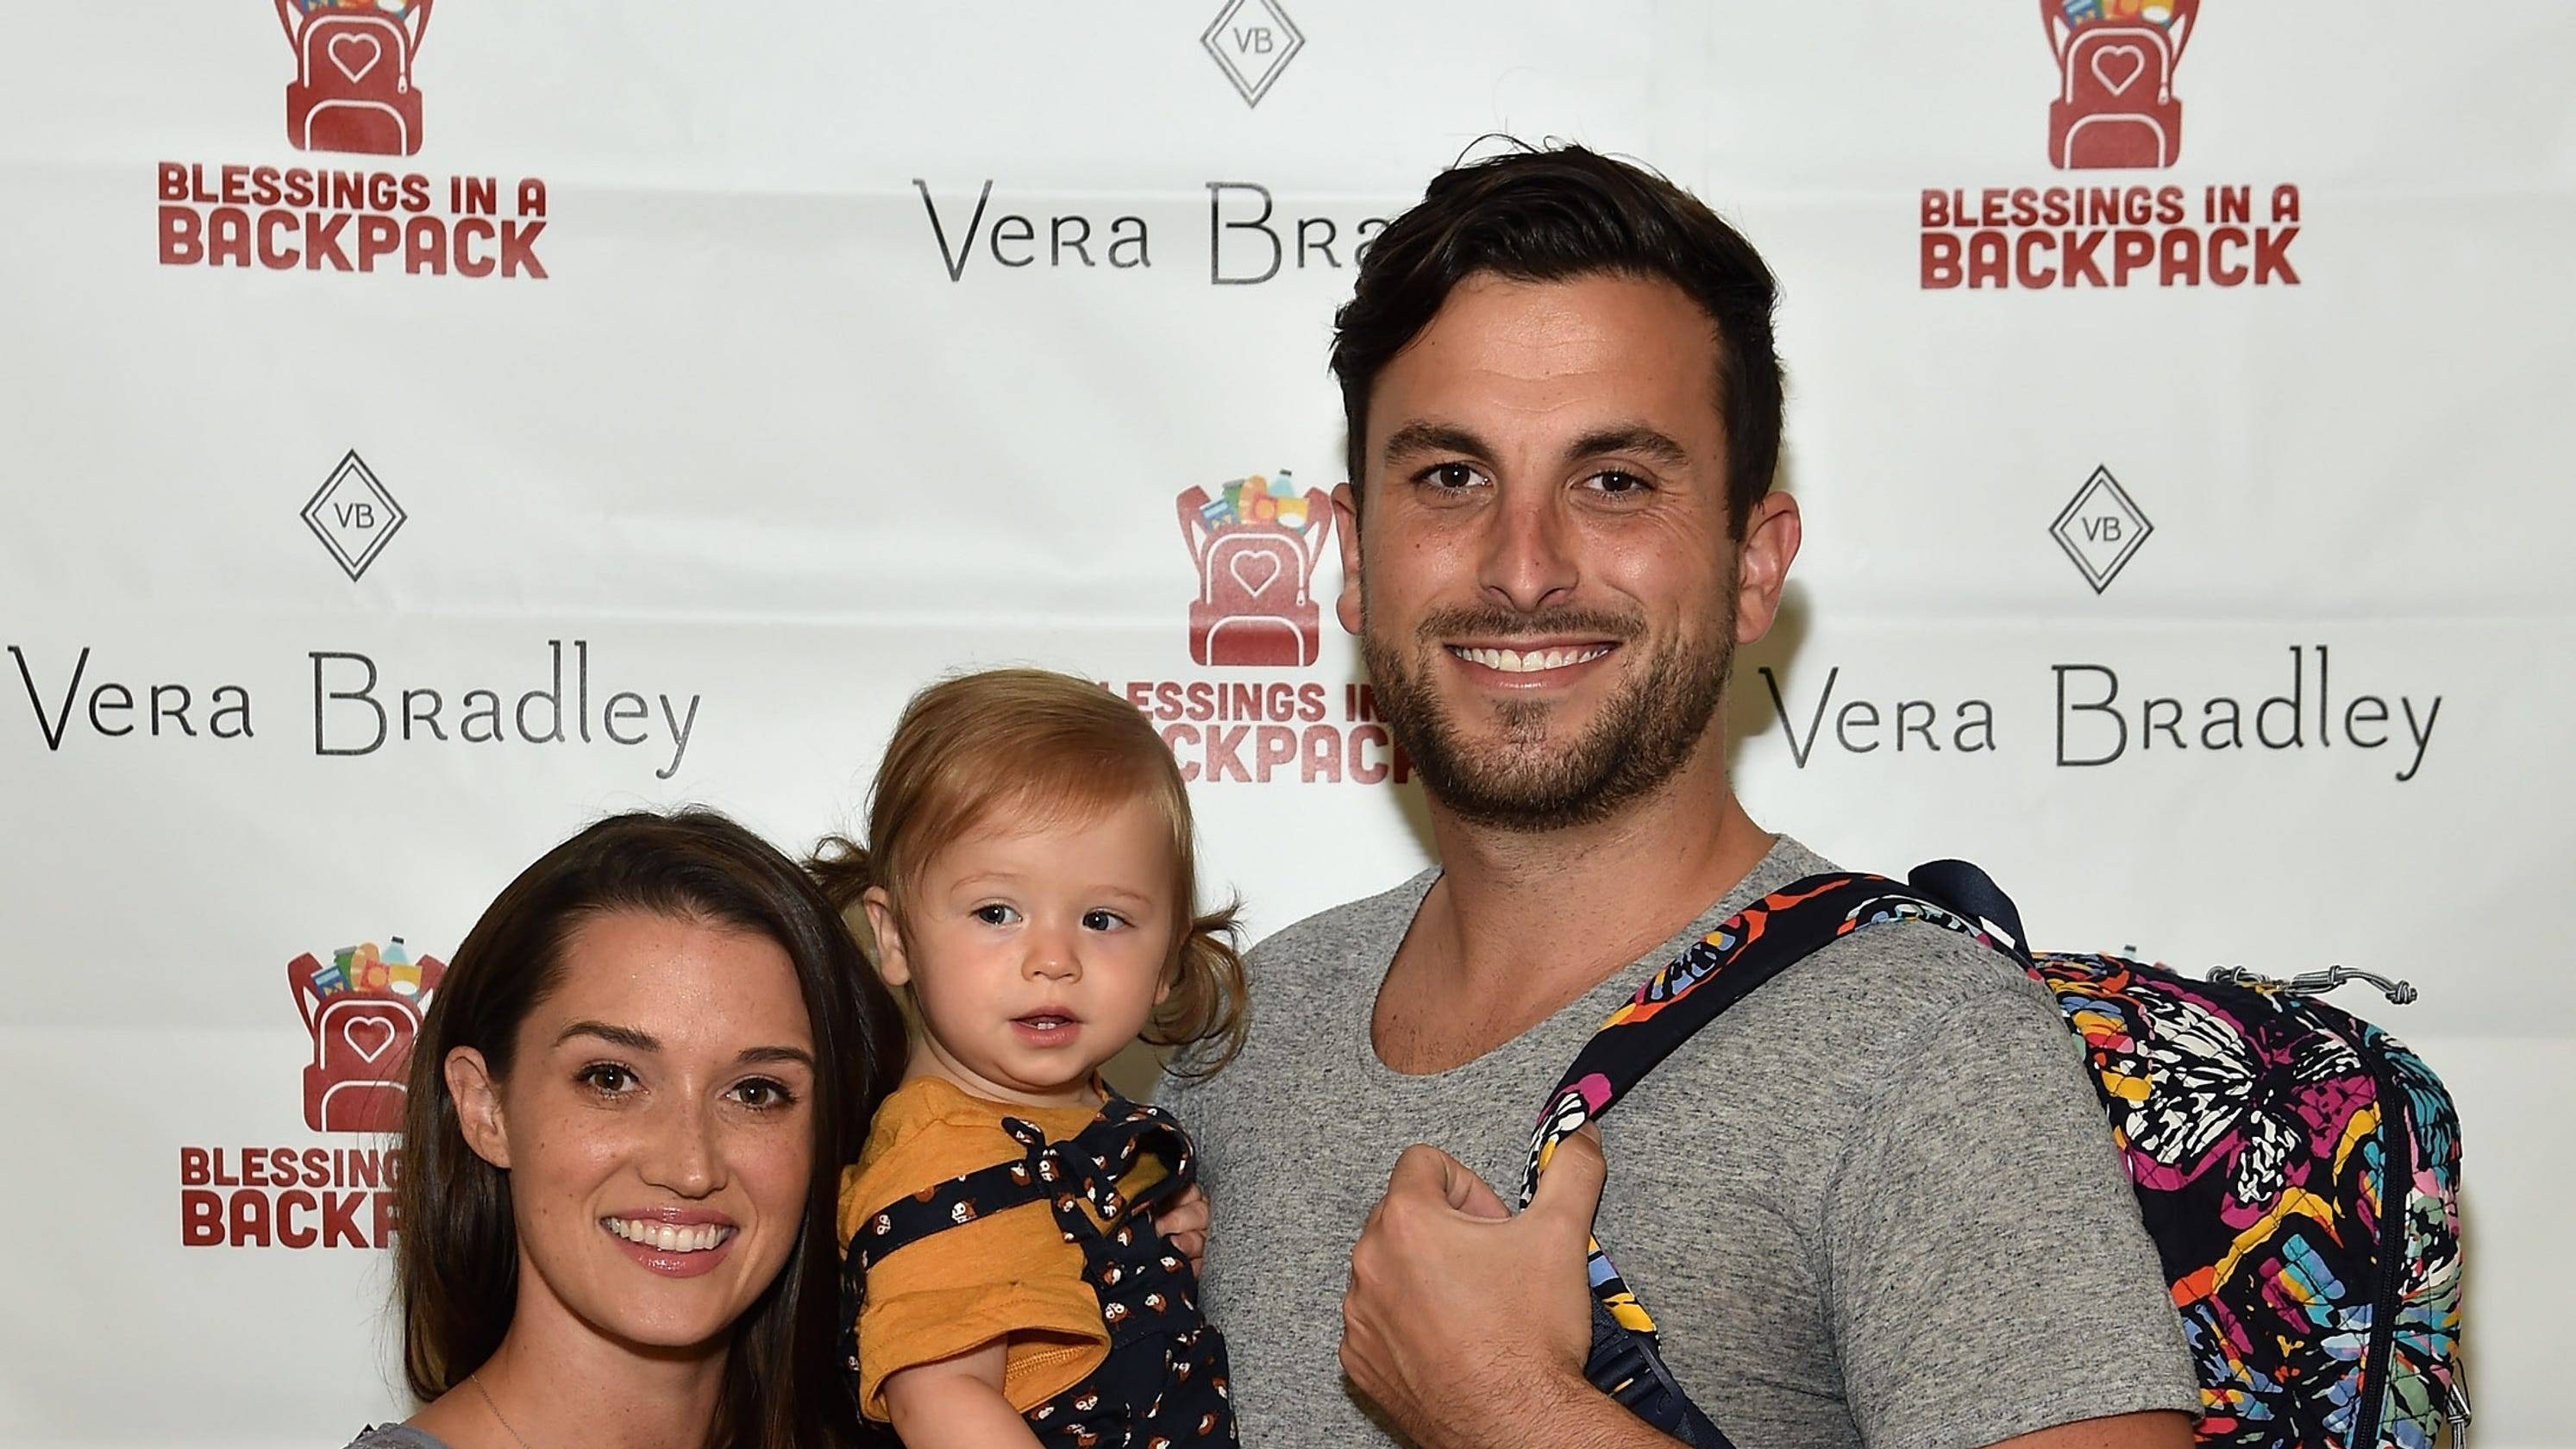 Bachelor in Paradise Jade Roper Speaks her Experience of Accidental Home Birth through Open Letter